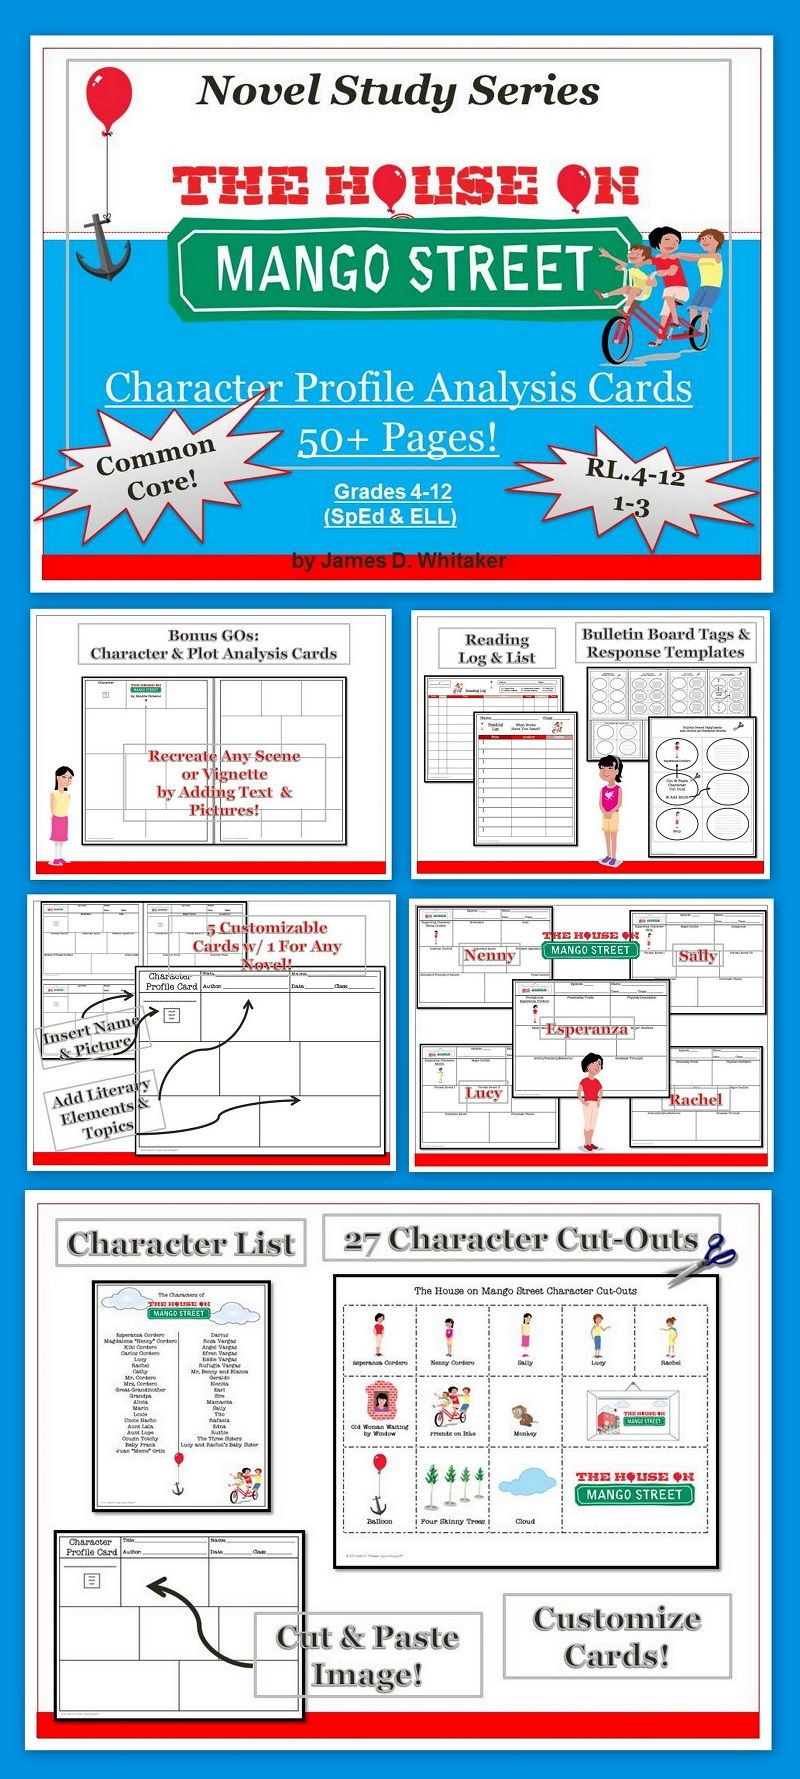 the house on mango street by sandra cisneros themes the house house on mango street character analysis profile cards common core